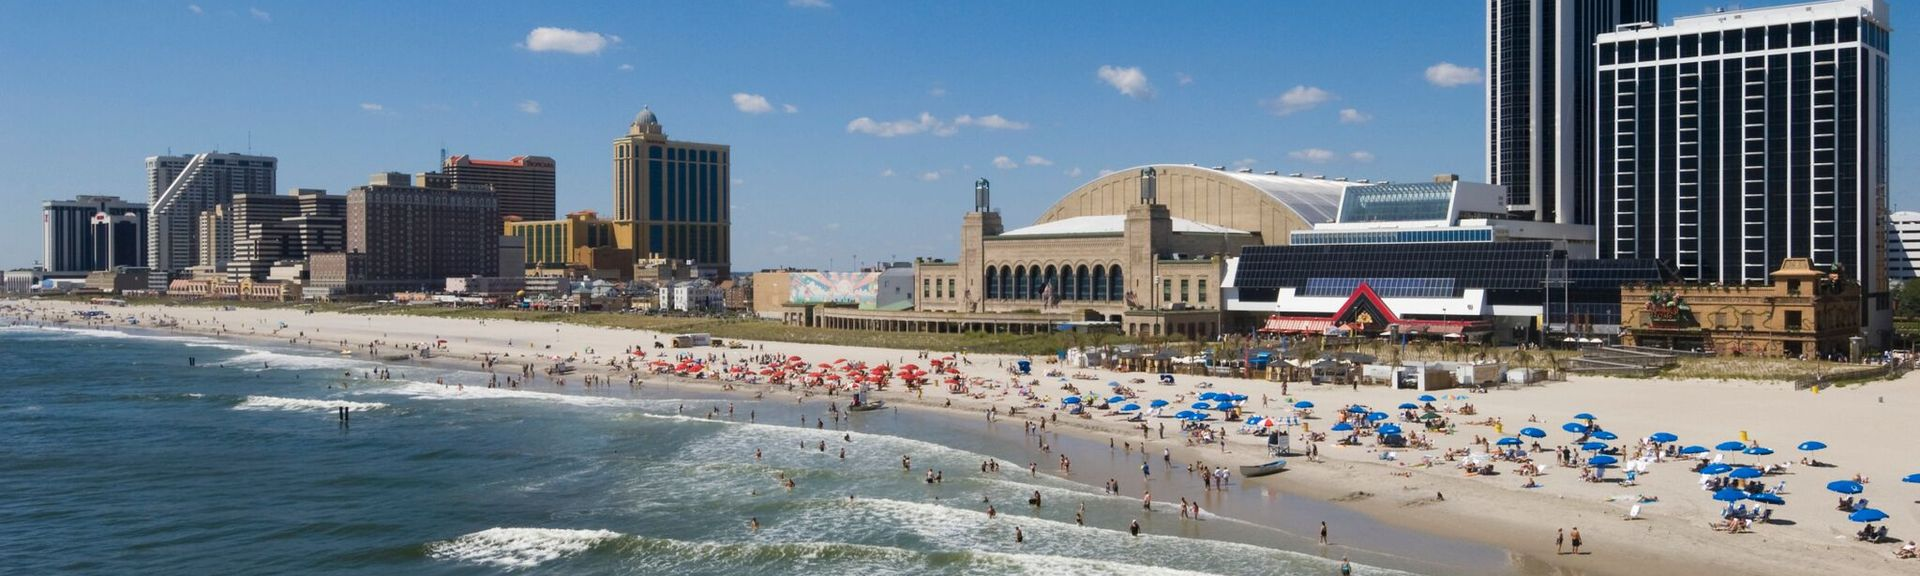 Atlantic City, NJ, USA